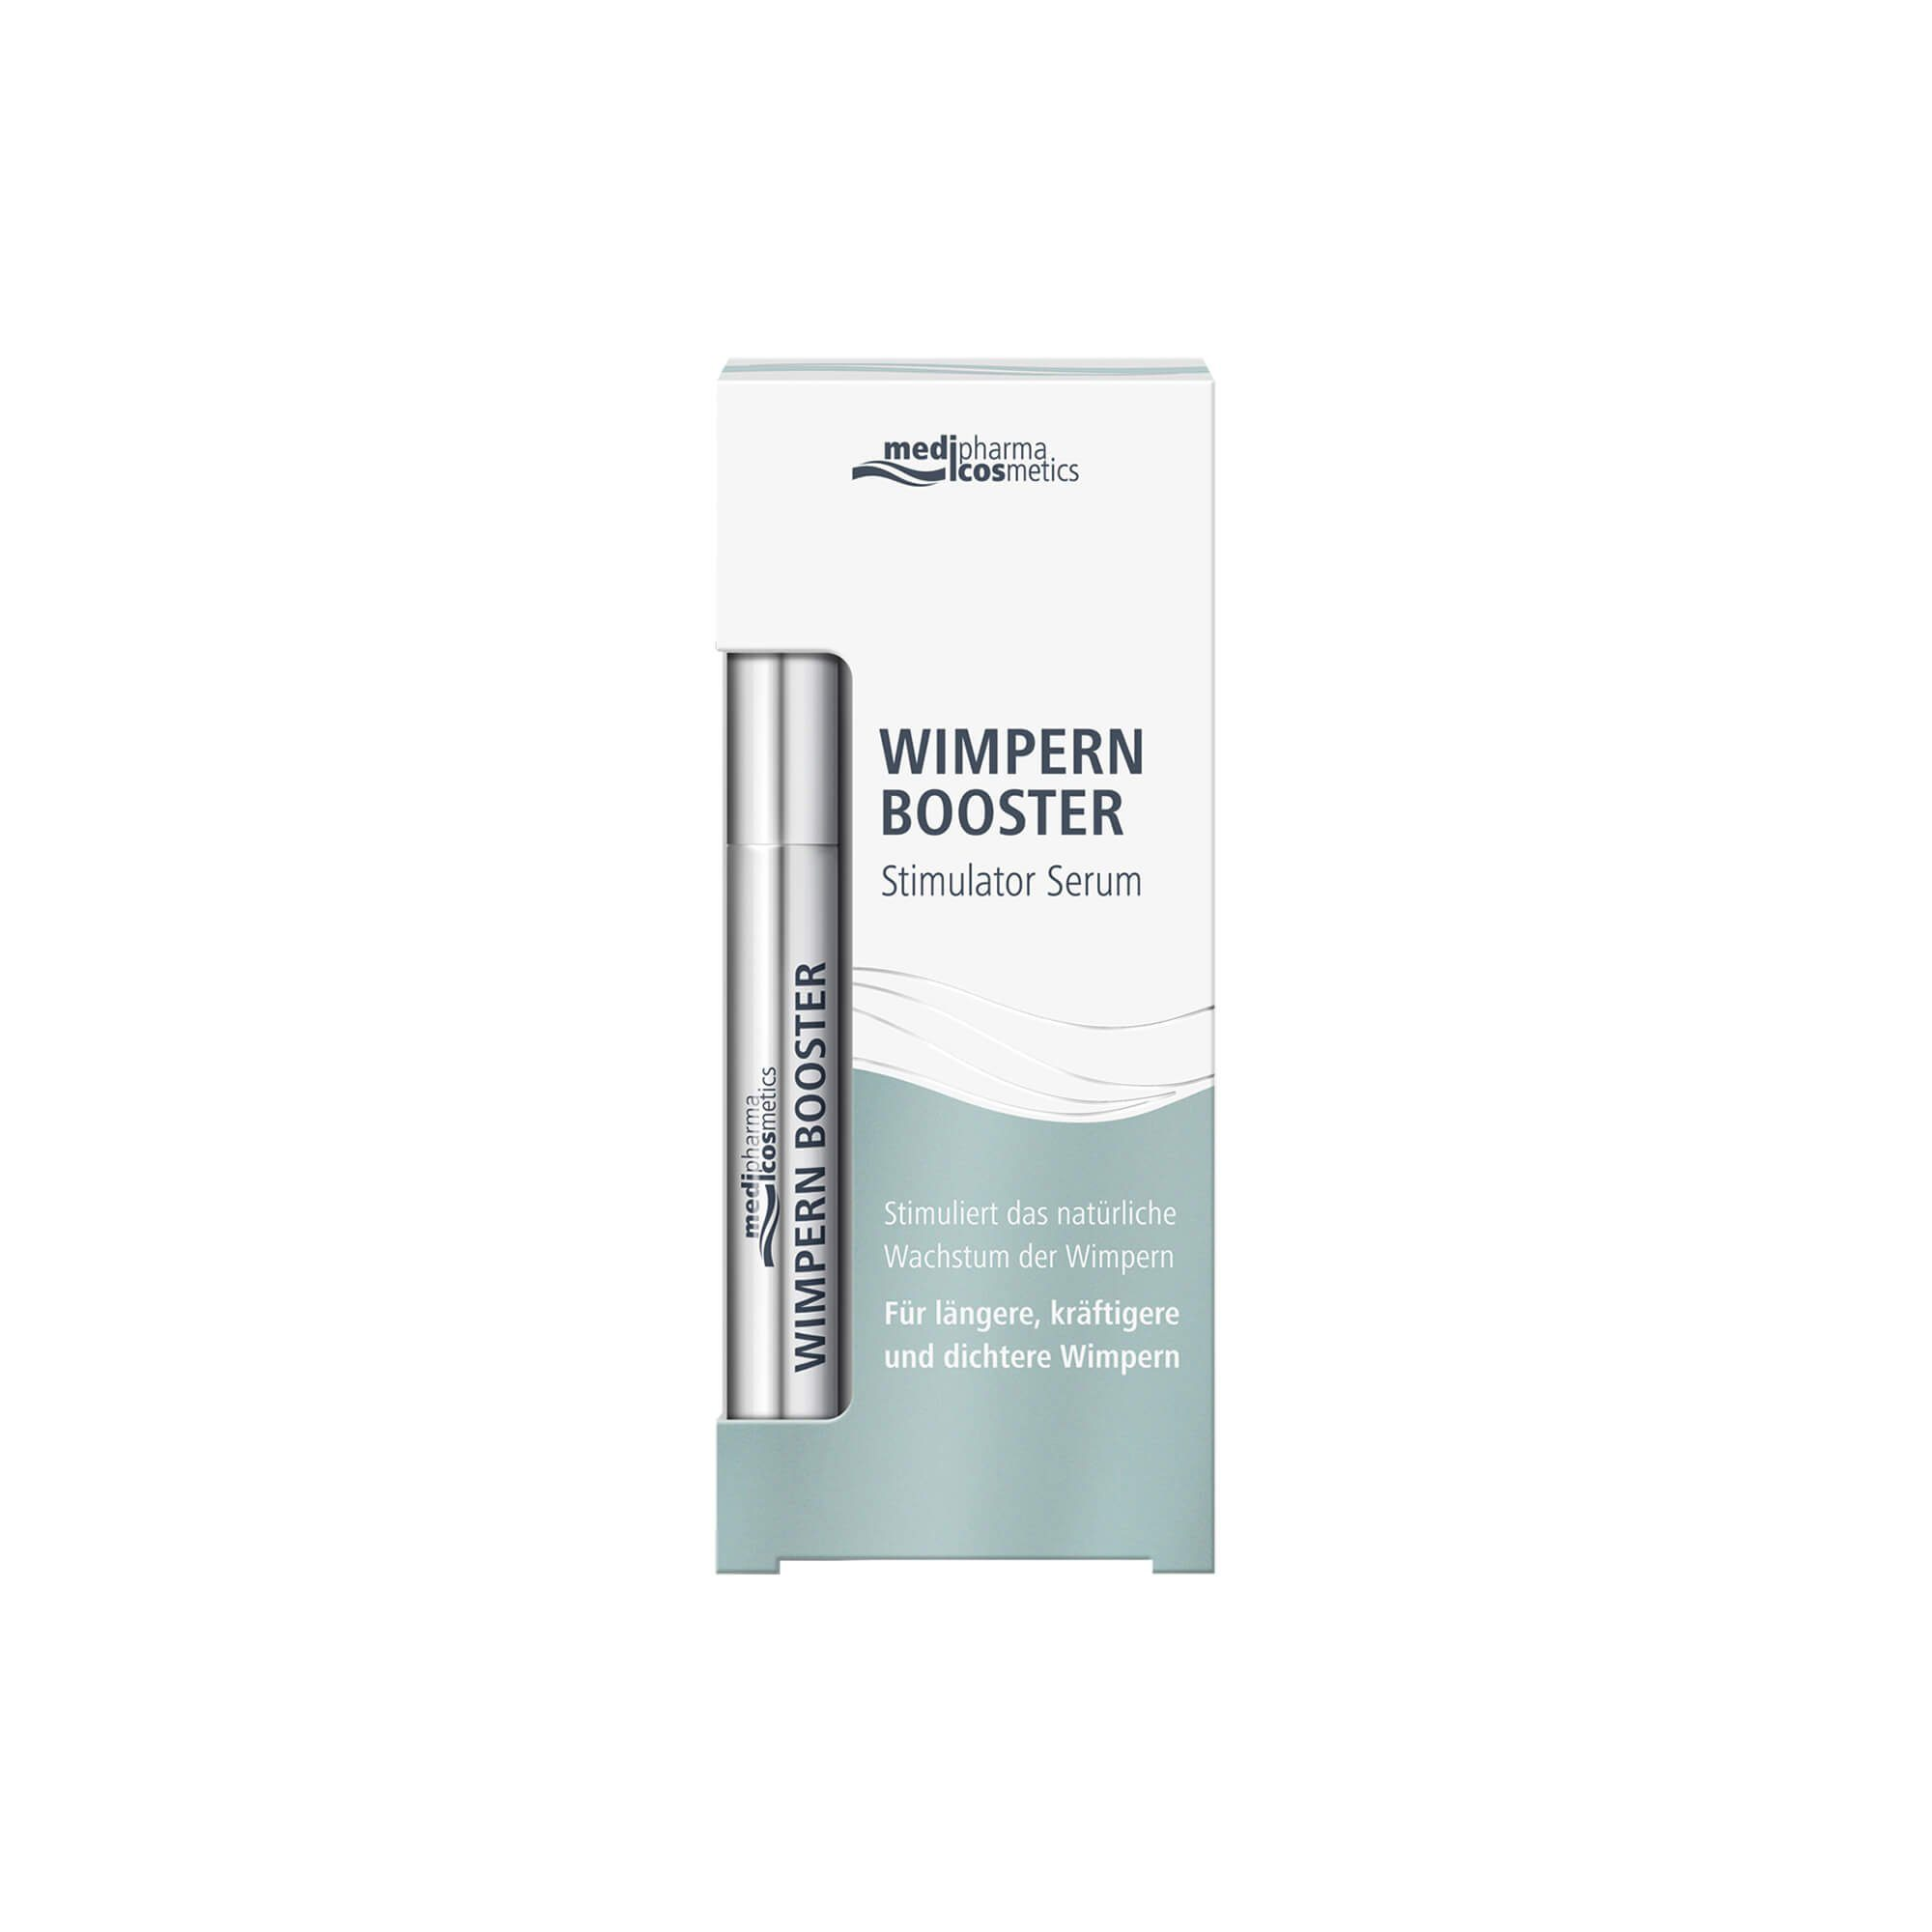 medipharma cosmetics Wimpern Booster Stimulator Serum, 2.7 ml